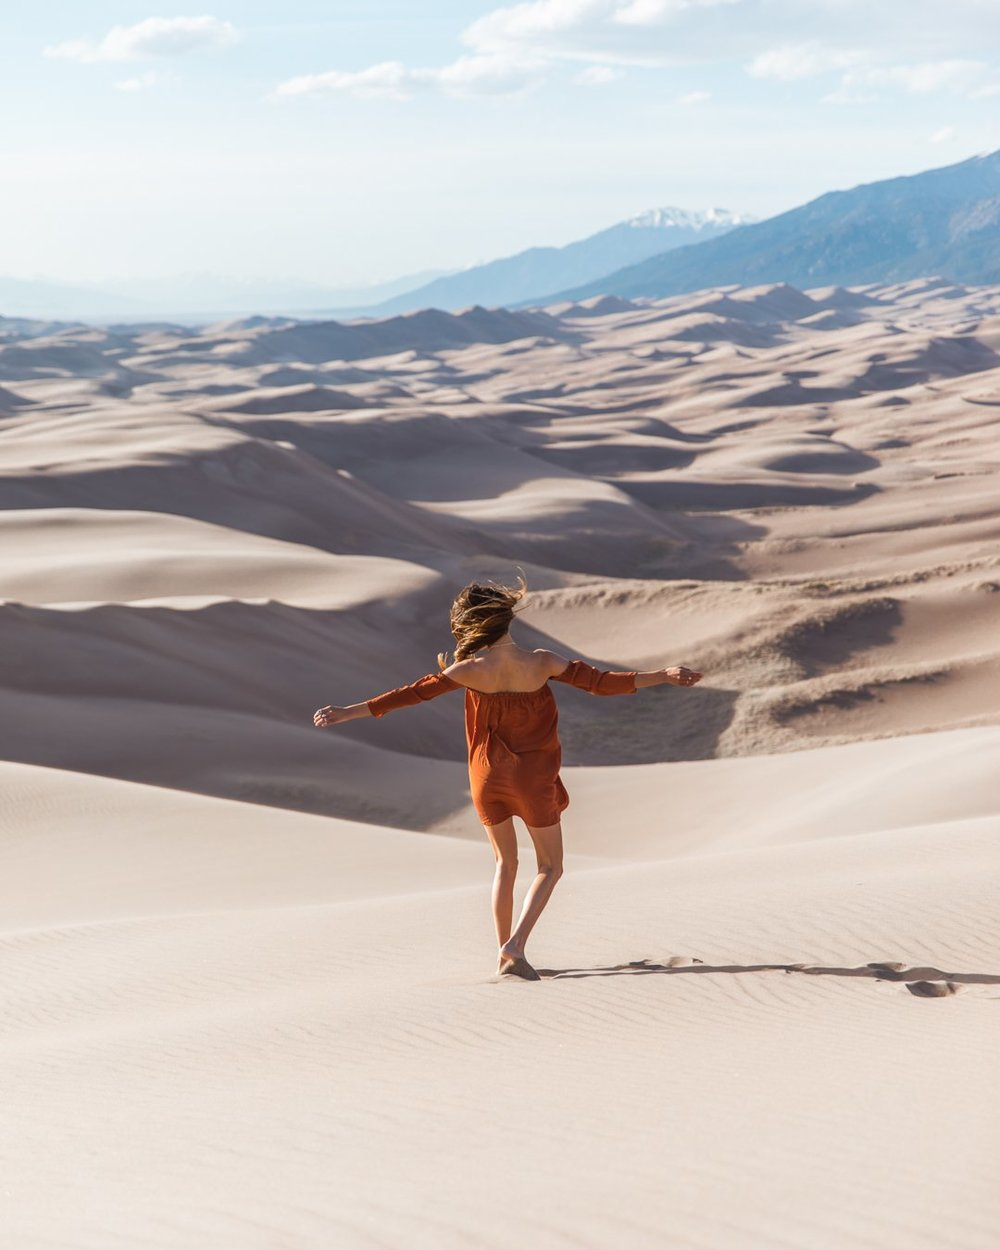 Tahnee Pinches, shot by Morgan McDougall from Cosmos Companions dancing in the Great Sand Dunes National Park, Colorado.